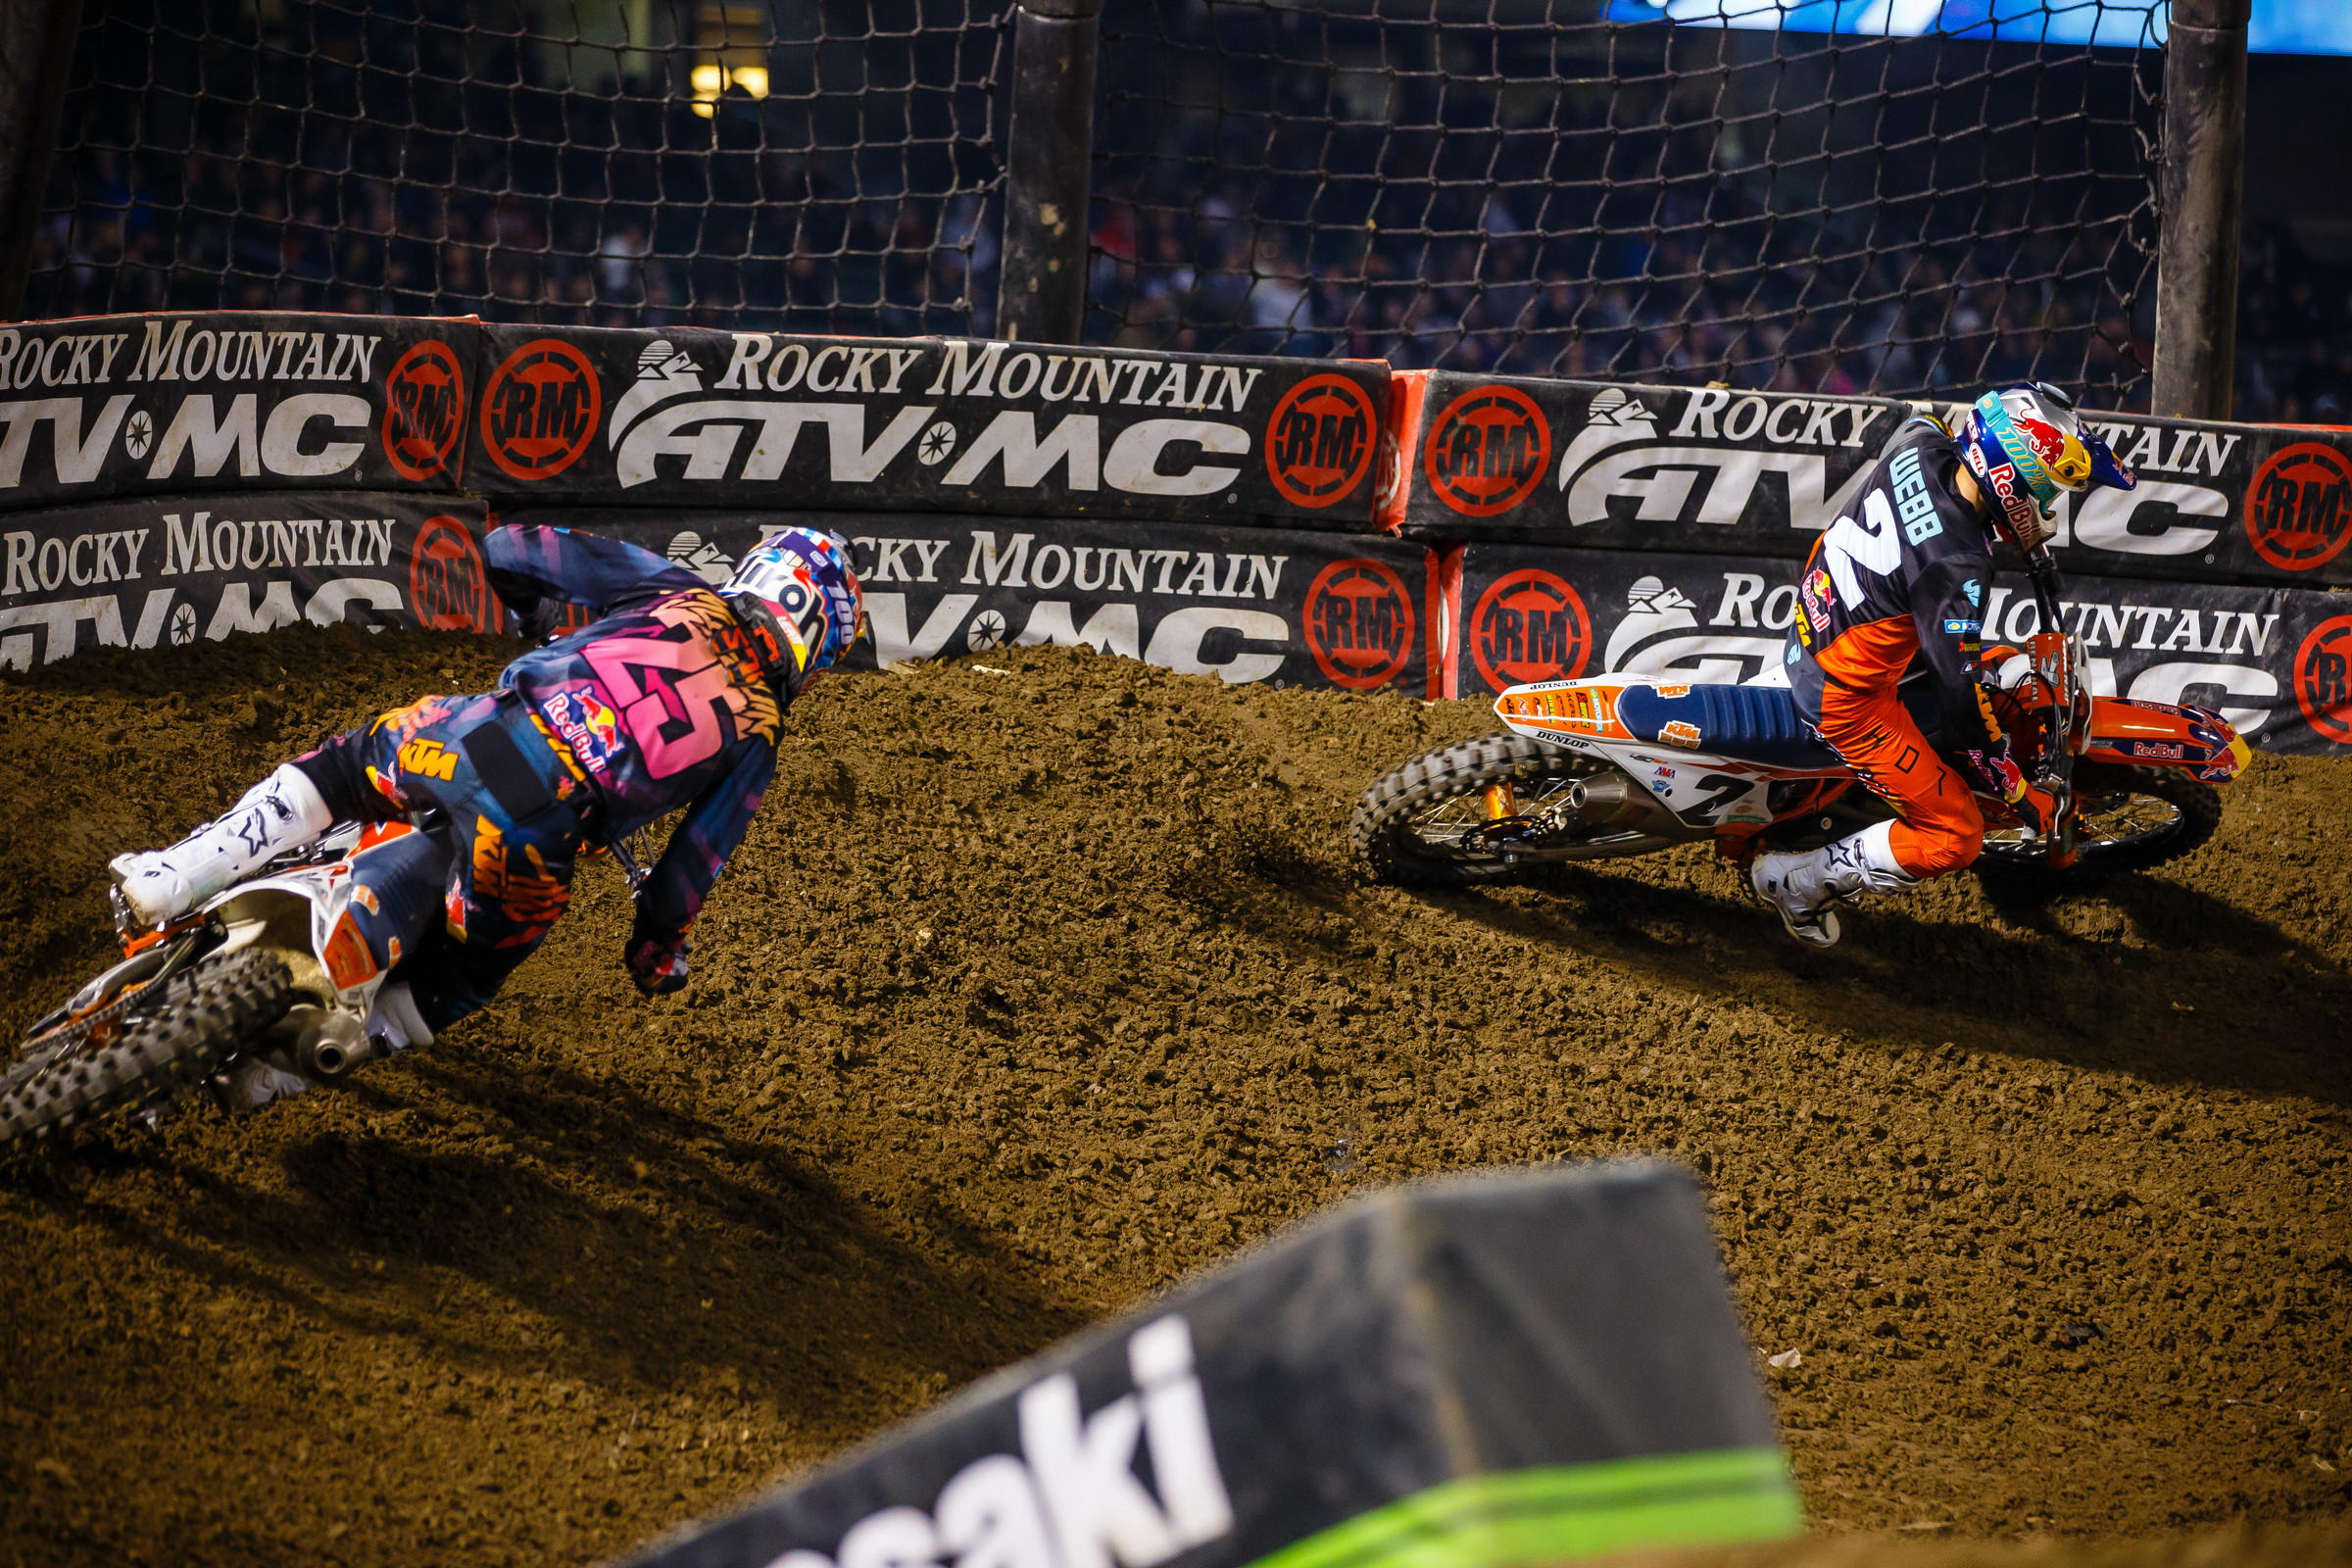 The Red Bull KTM teammates have battled back-and-forth all season.